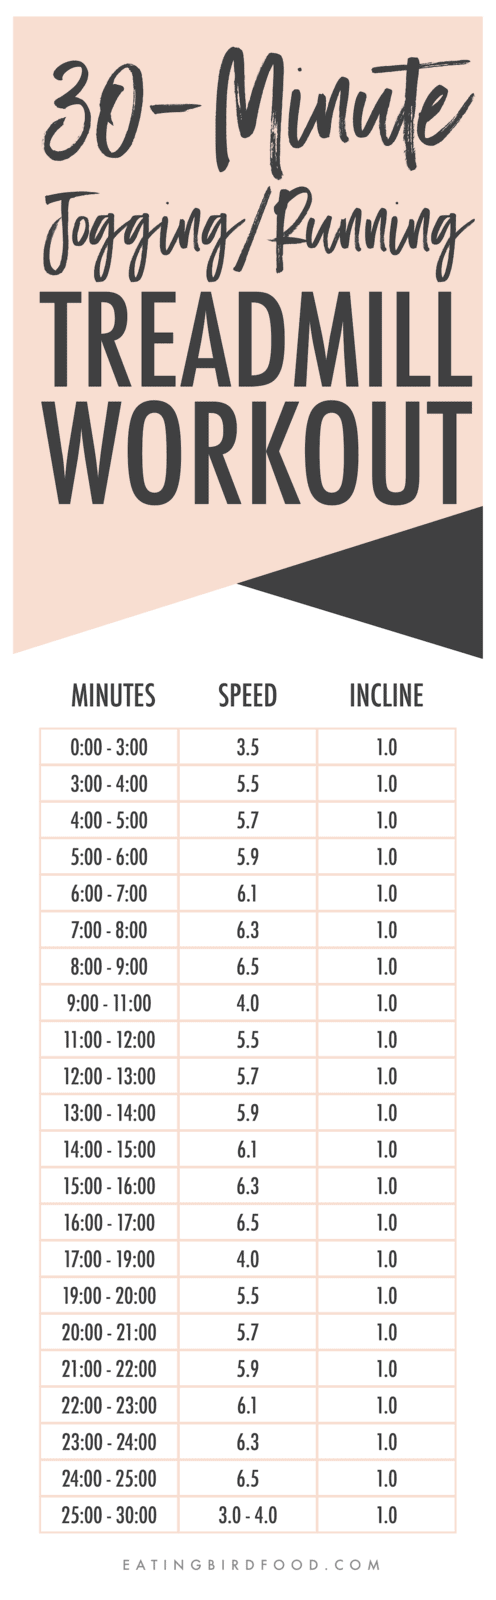 30-Minute Jogging/Running Treadmill Workout